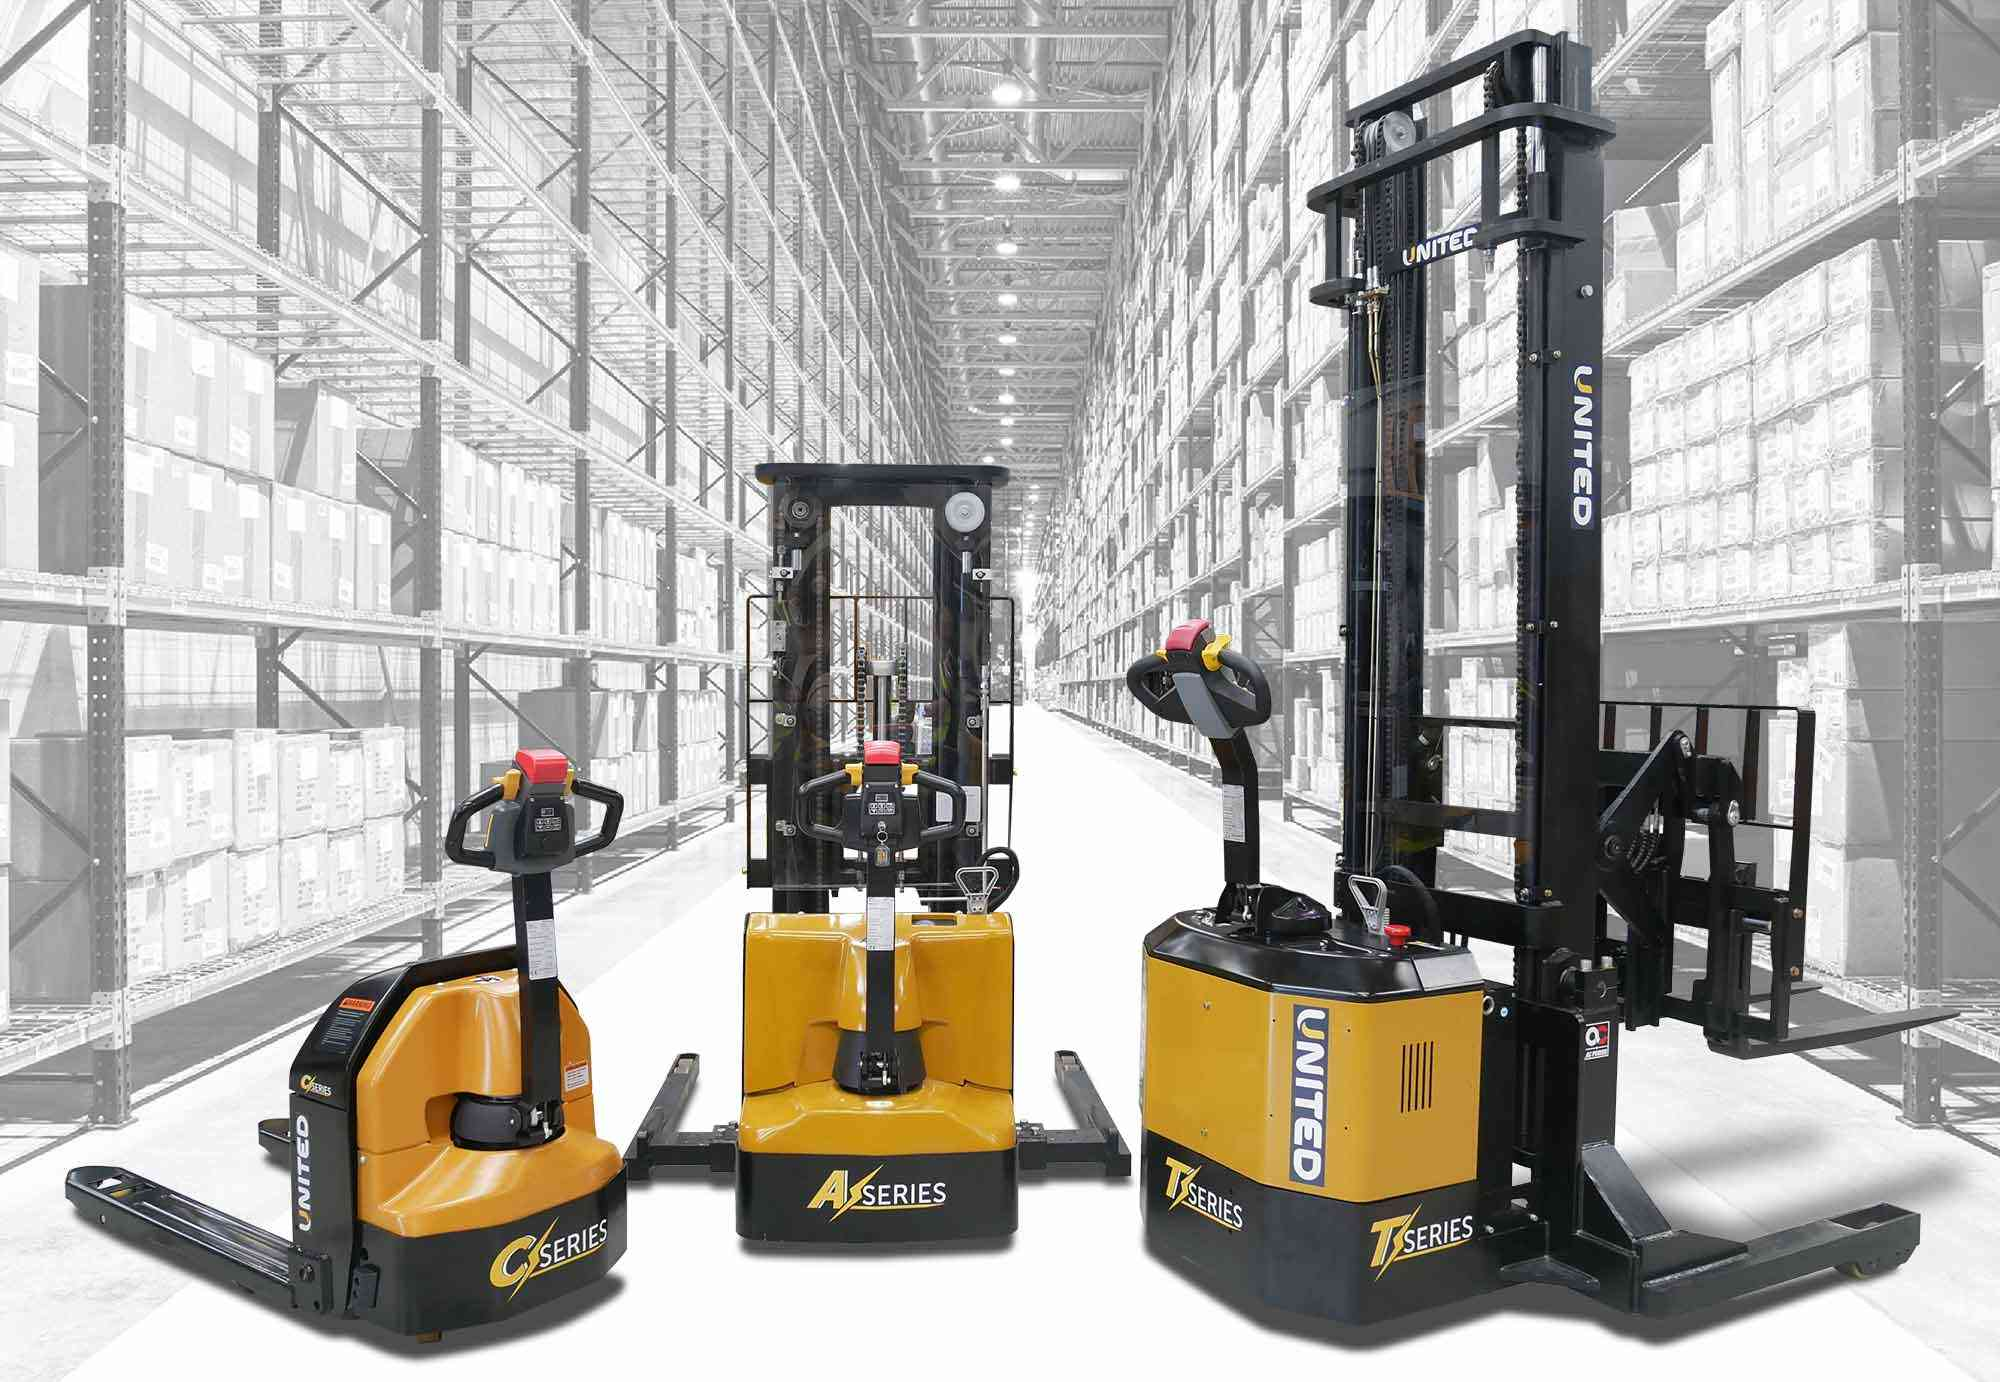 New United range of electric forklifts now available